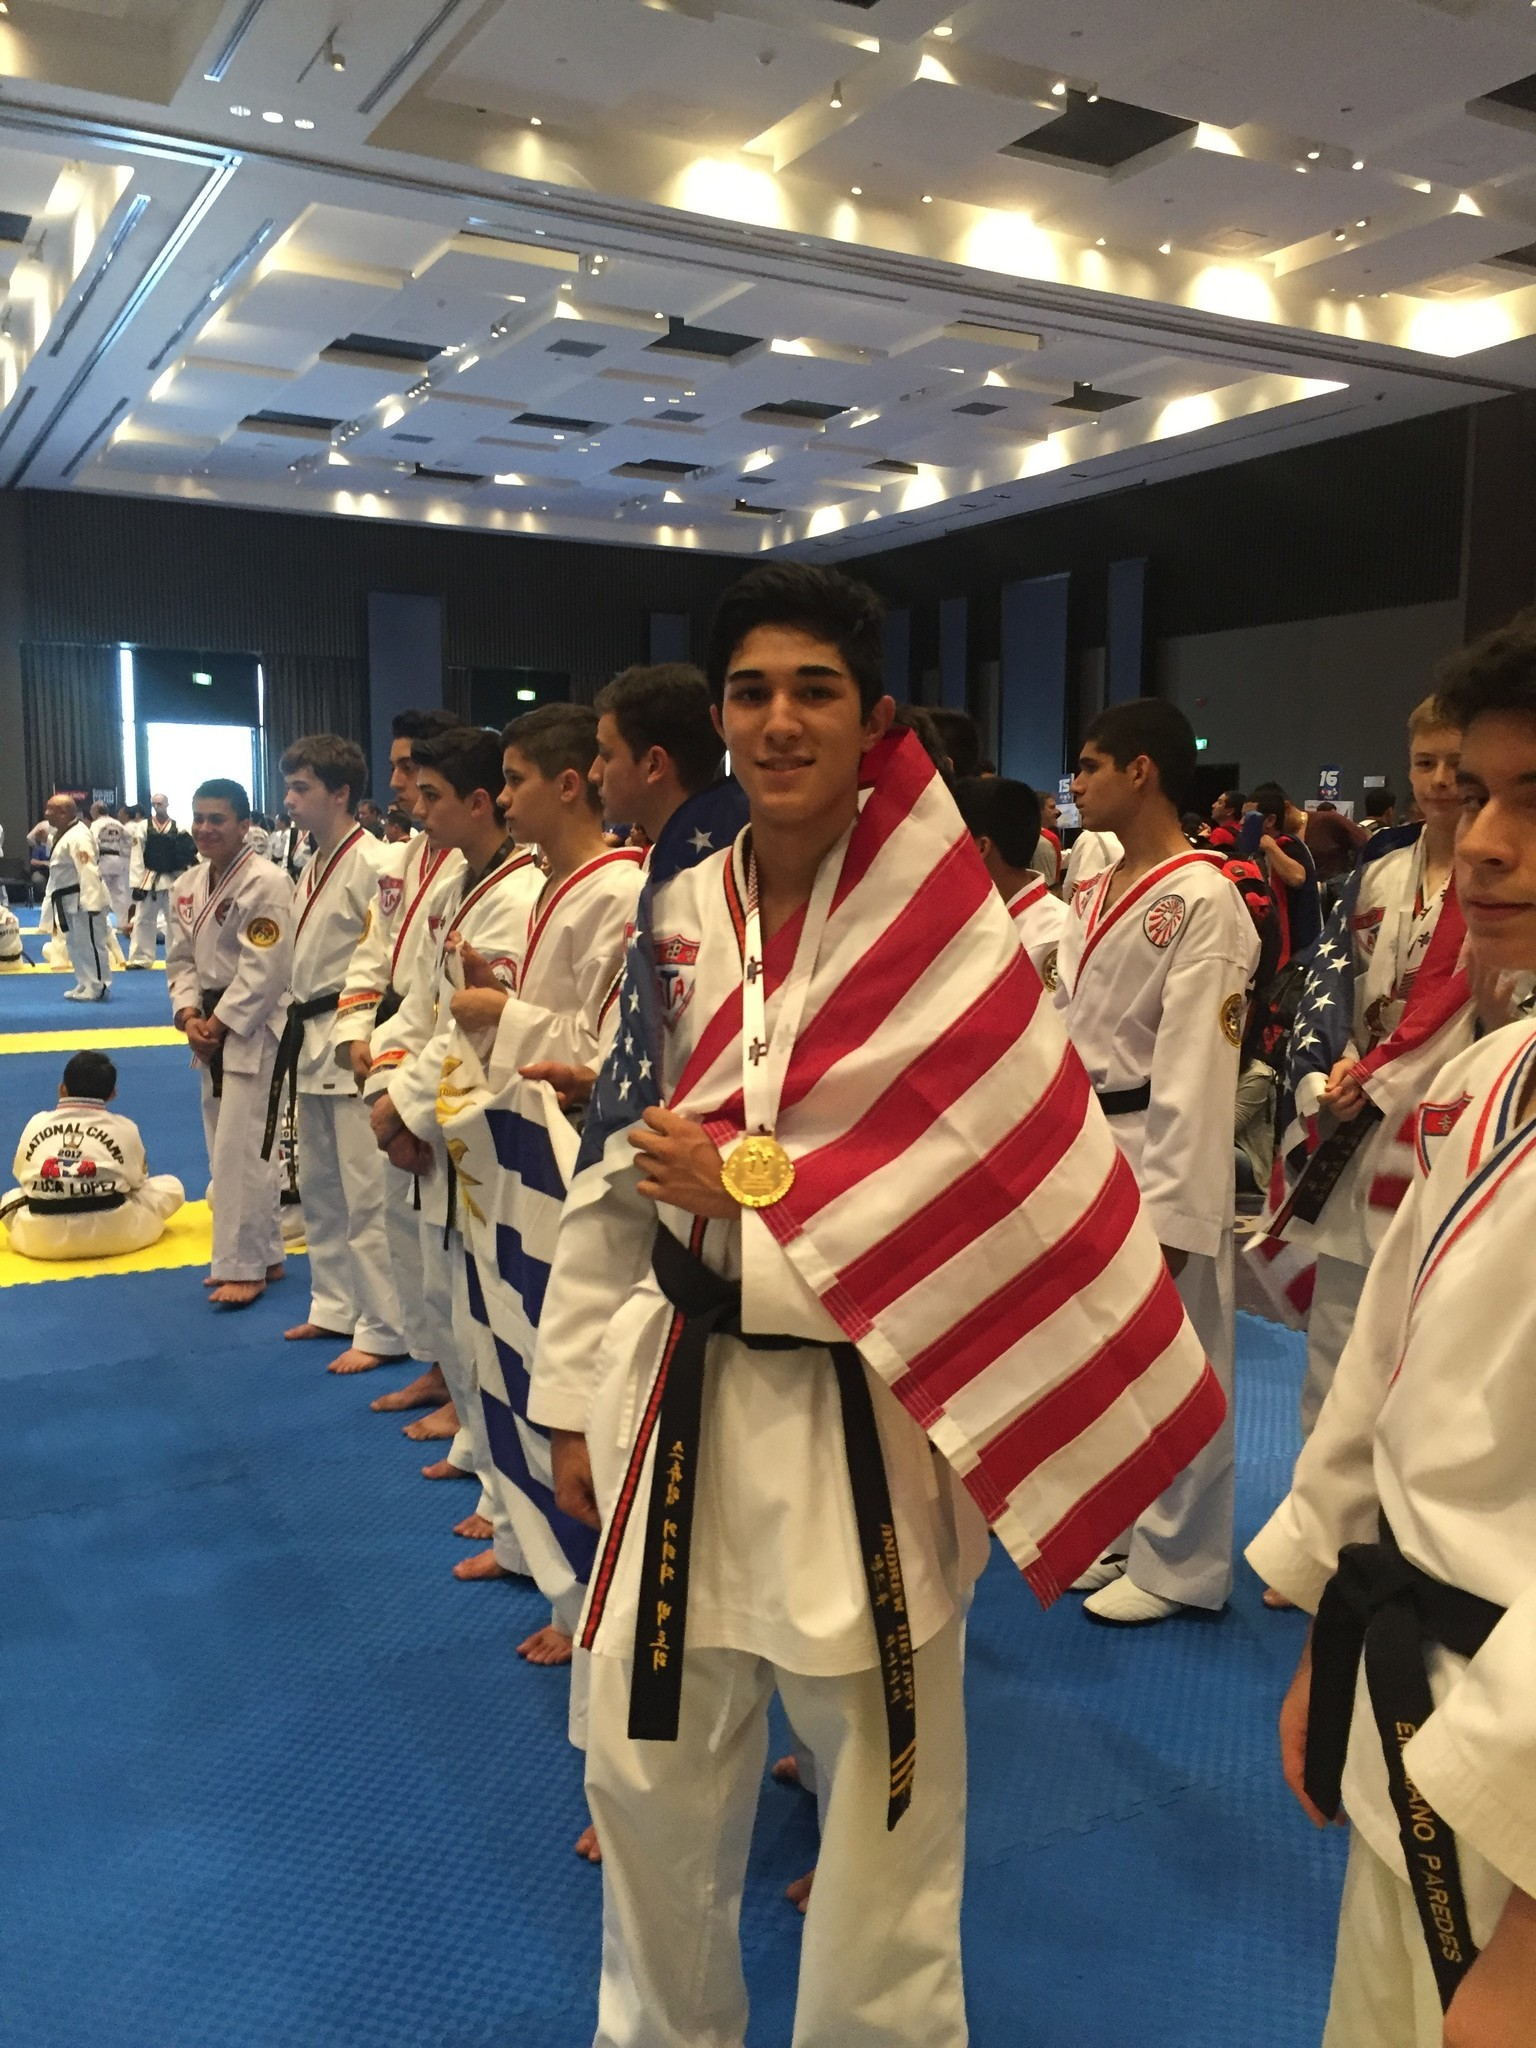 Andrew Heiati was proud to represent the U.S. at the PanAm Championships in Peru last October.